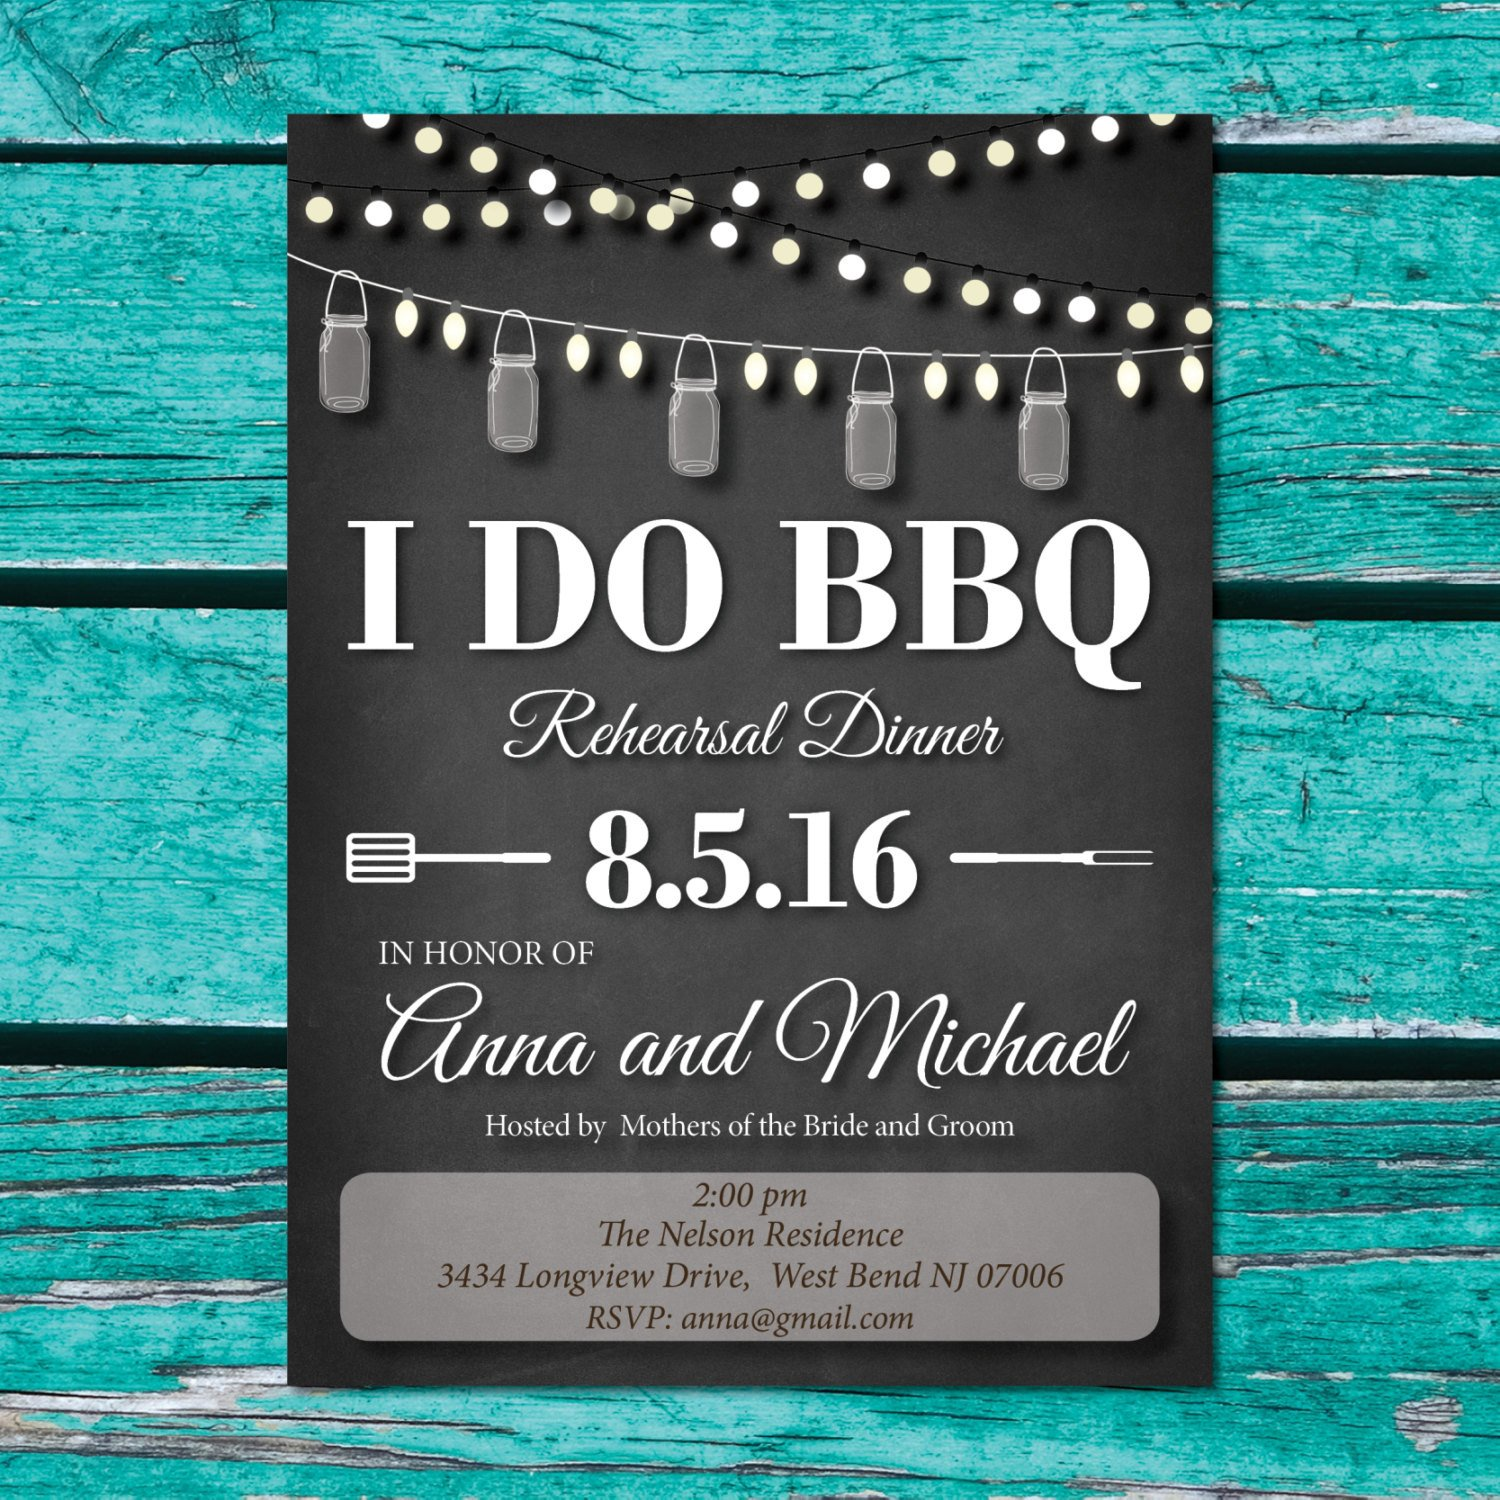 I Do Bbq Invitations I Do Bbq Rehearsal Dinner Invitations Black and White